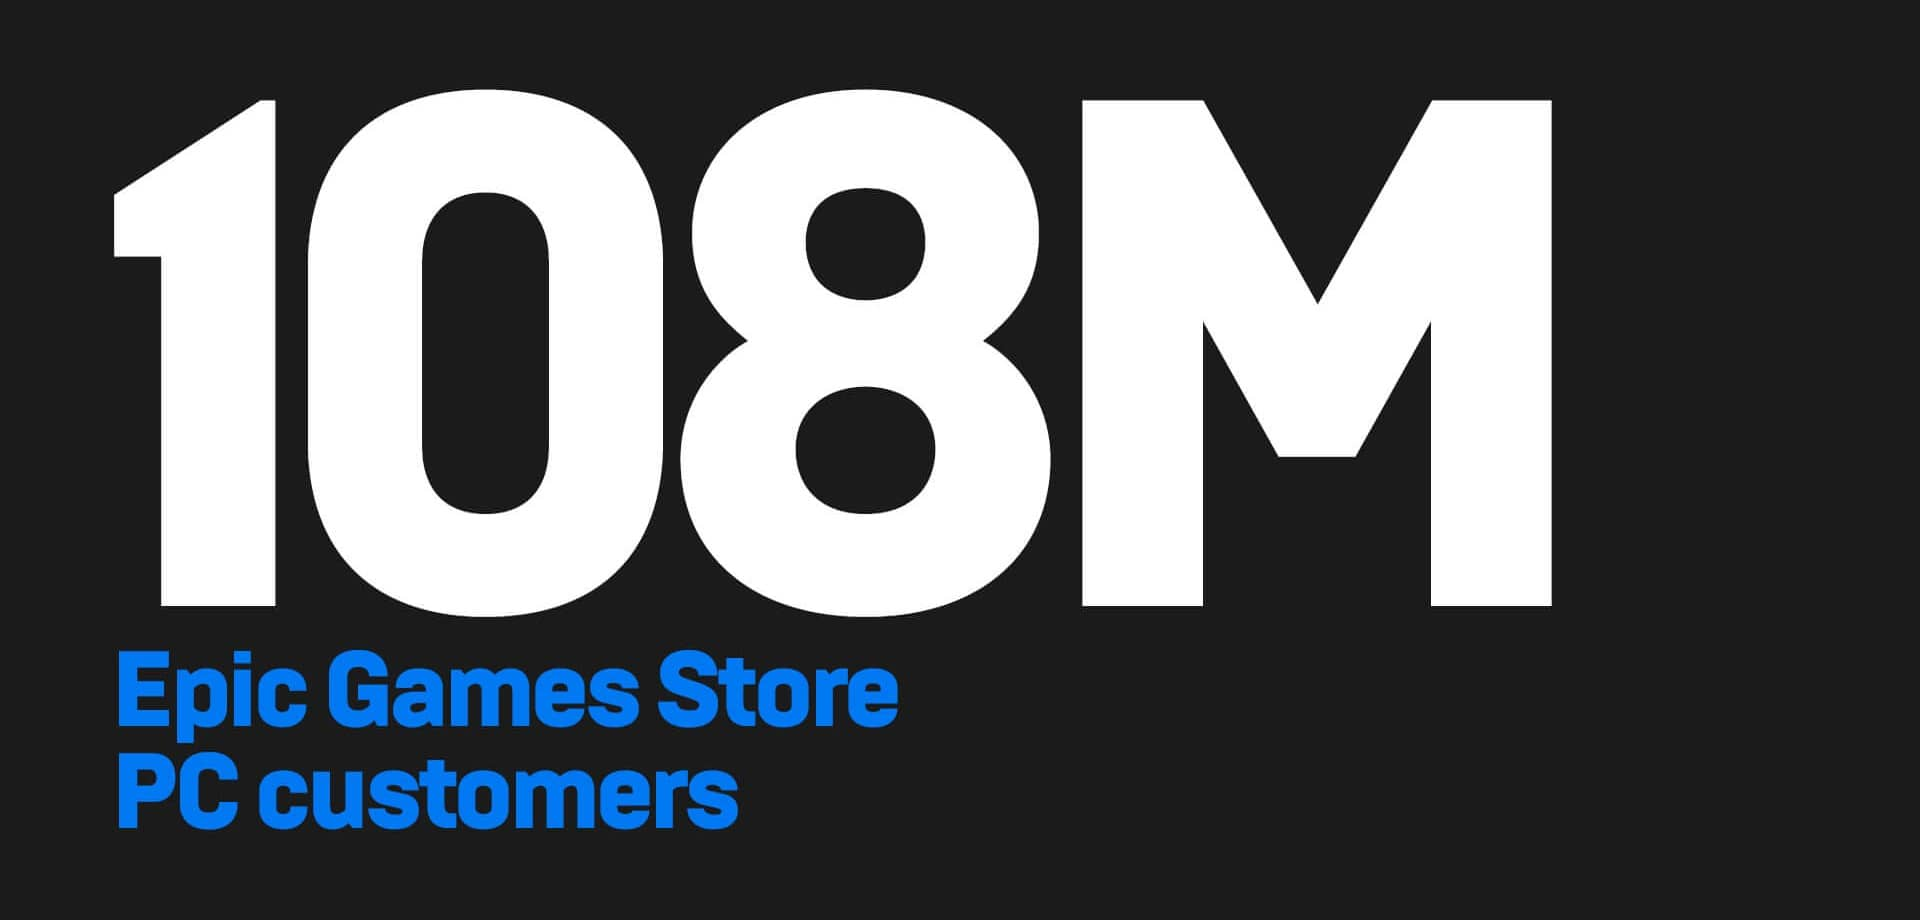 epic games store 2019 1